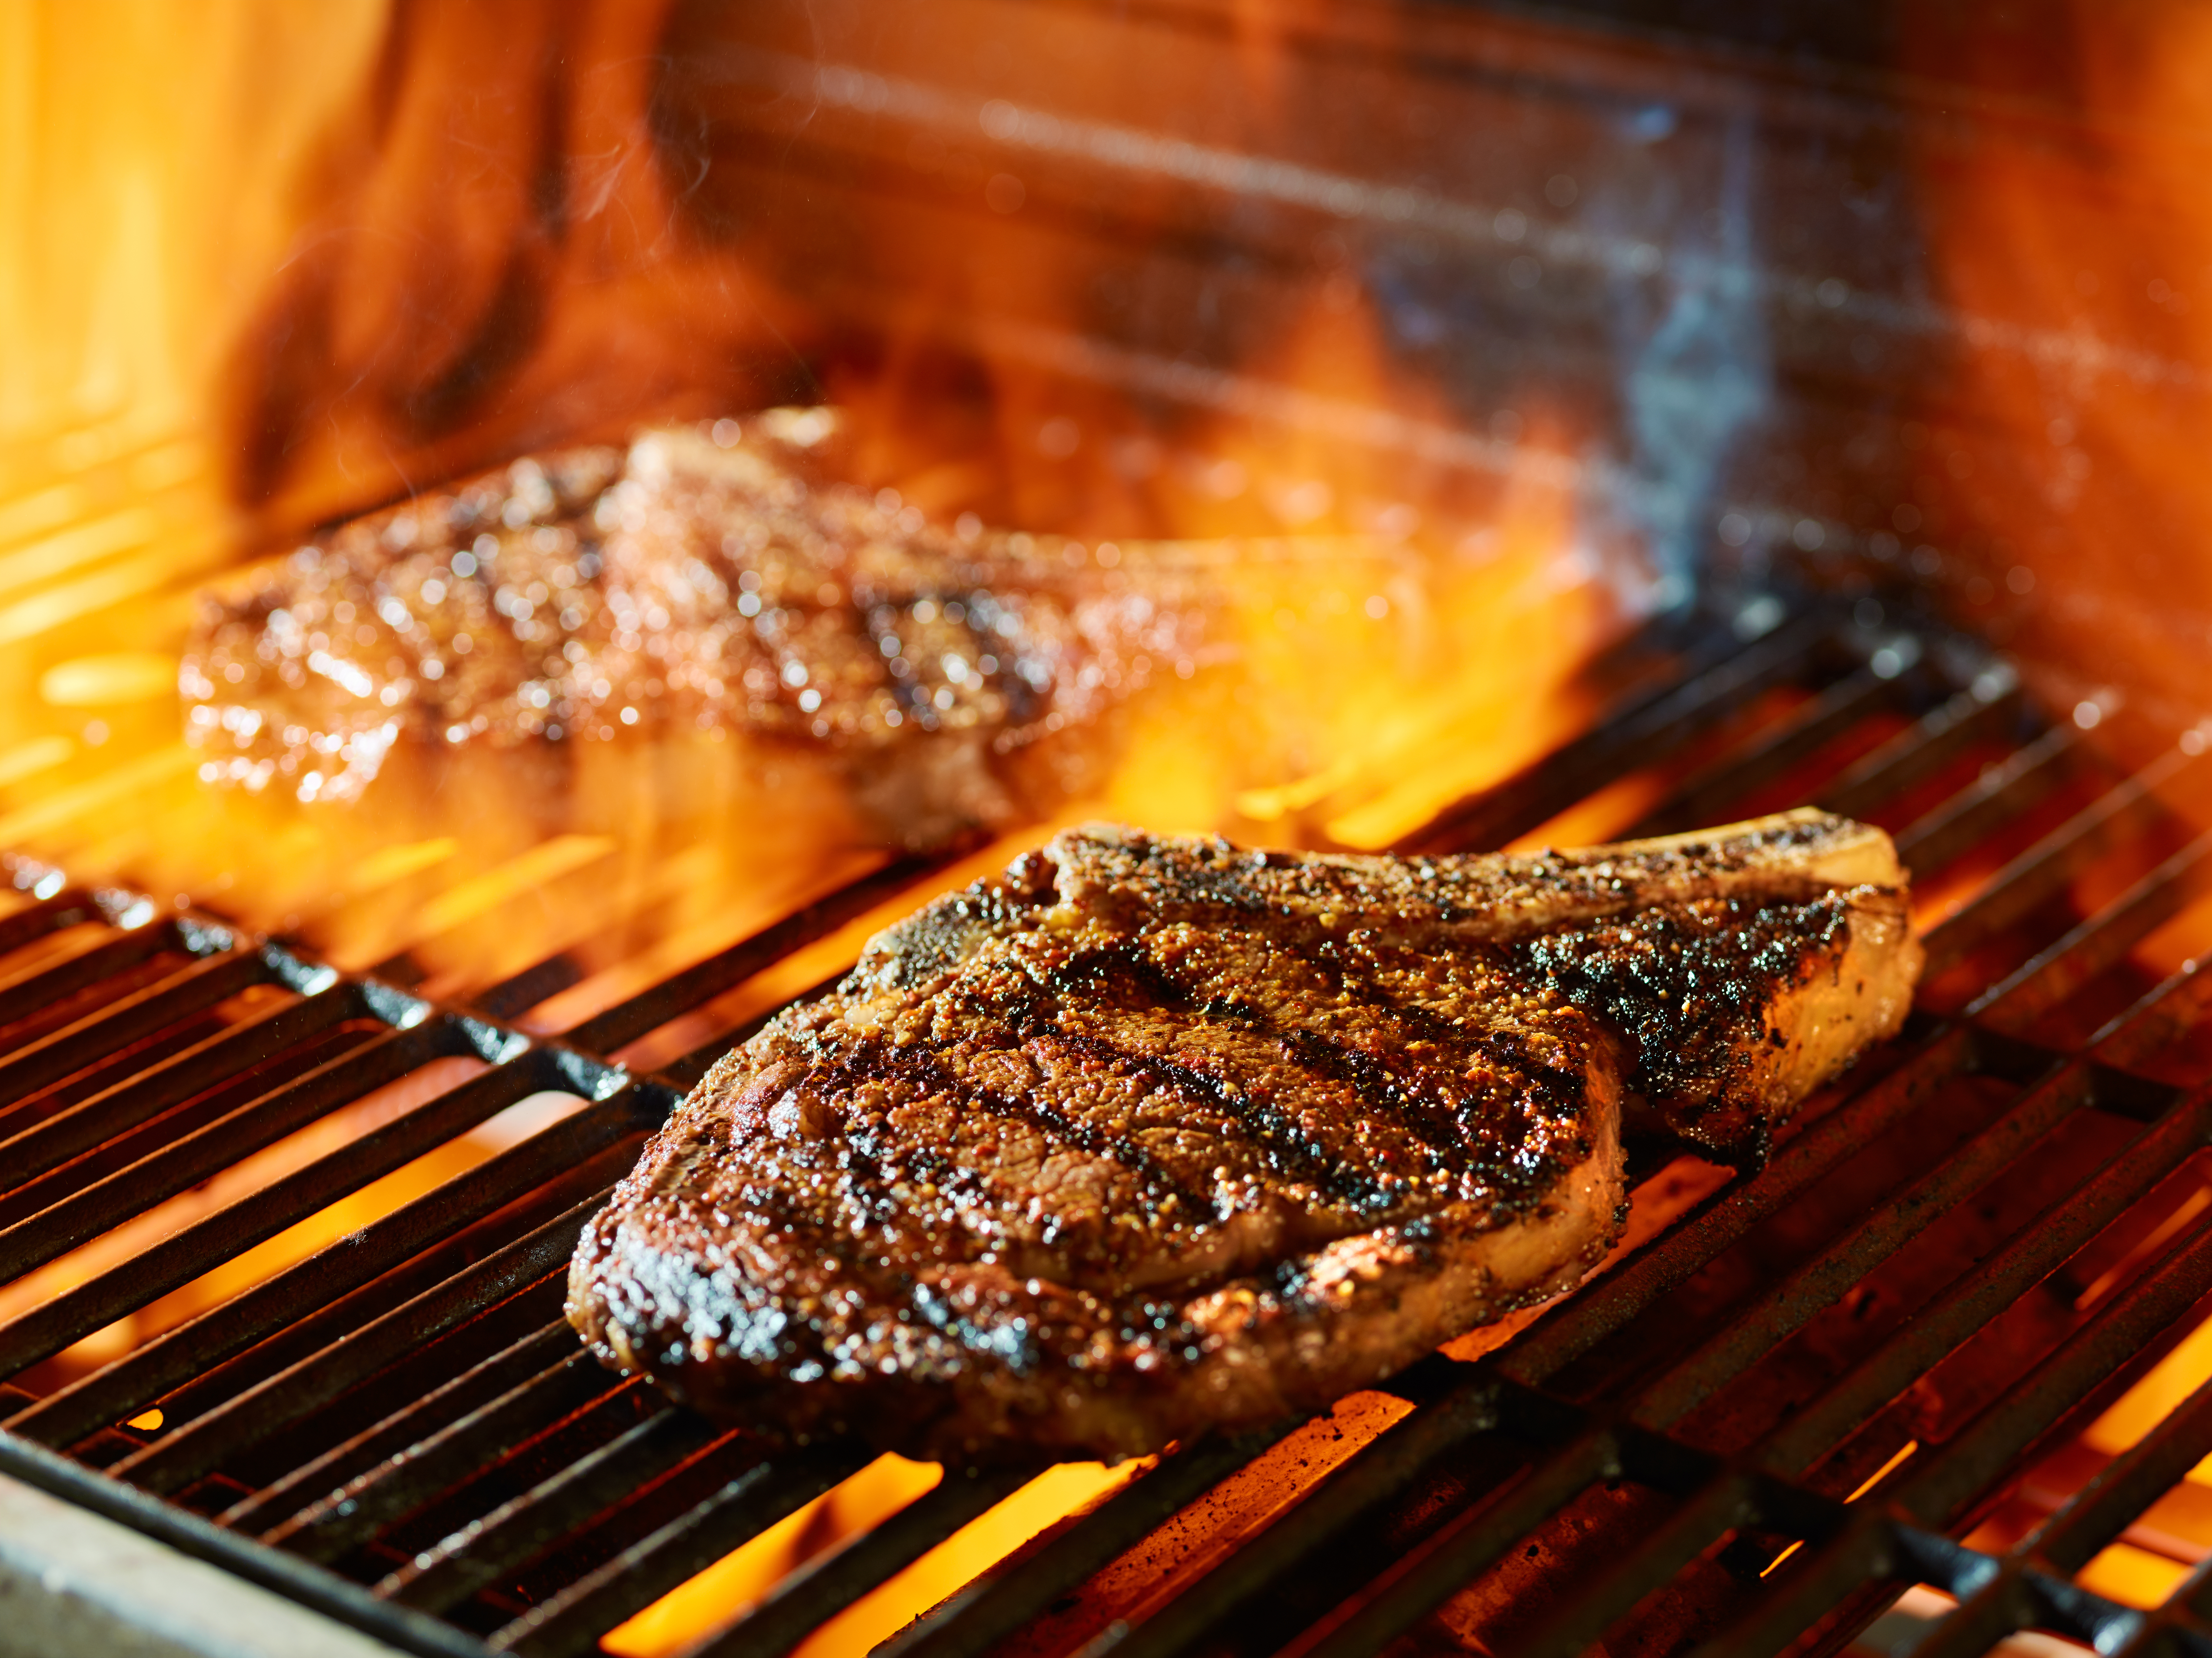 A beautifully flame broiled Beef Steak